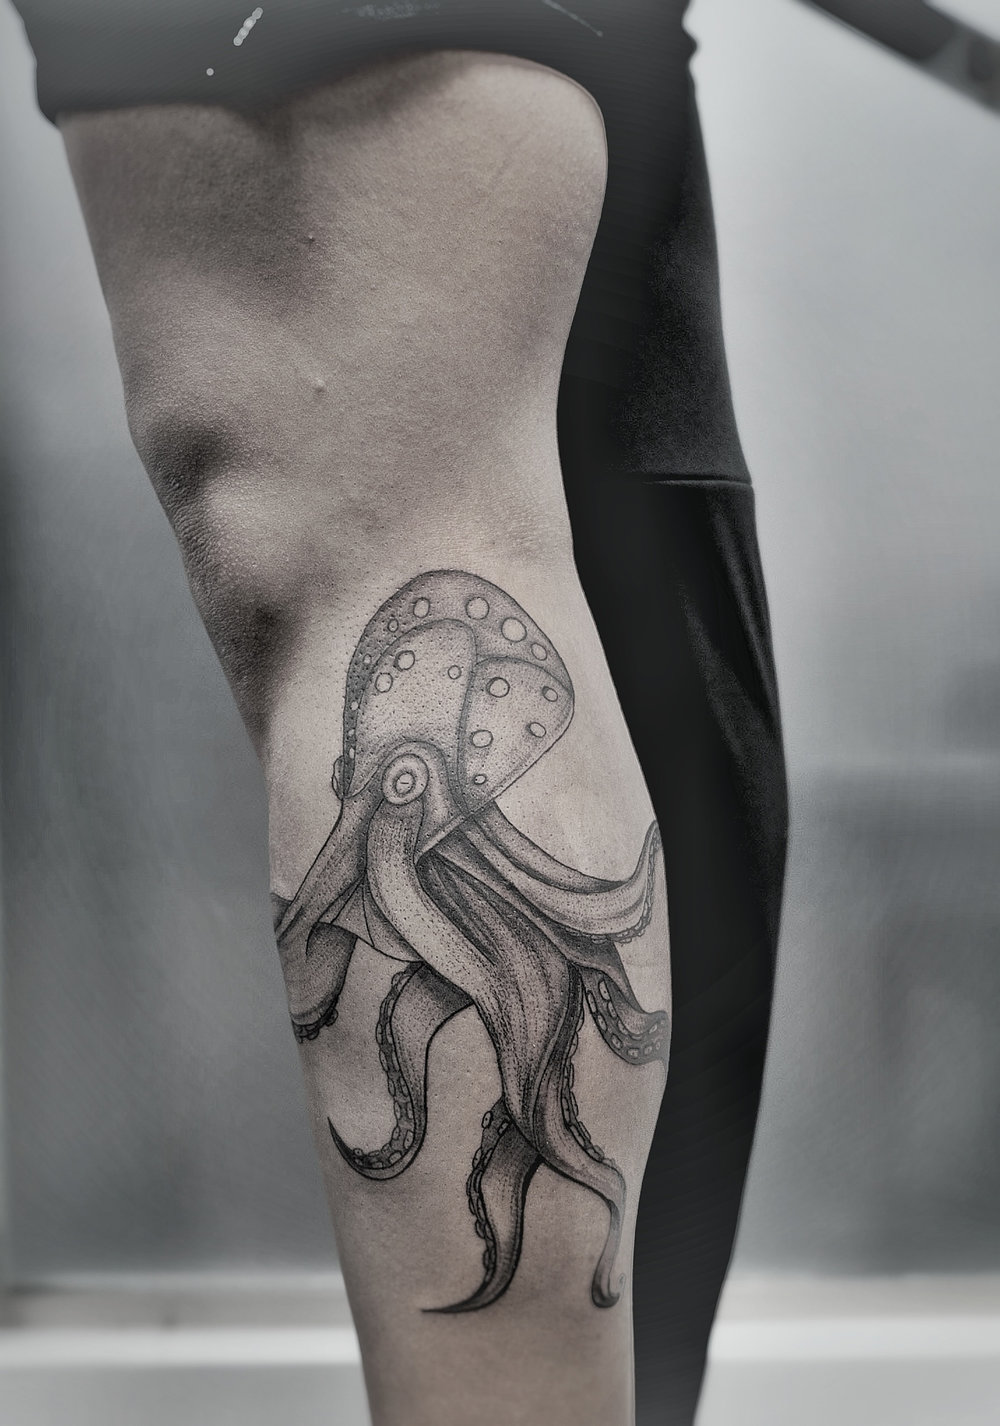 Custom Black and Gray Octopus Tattoo by Dani at Certified Tattoo Studios Denver Co.jpeg